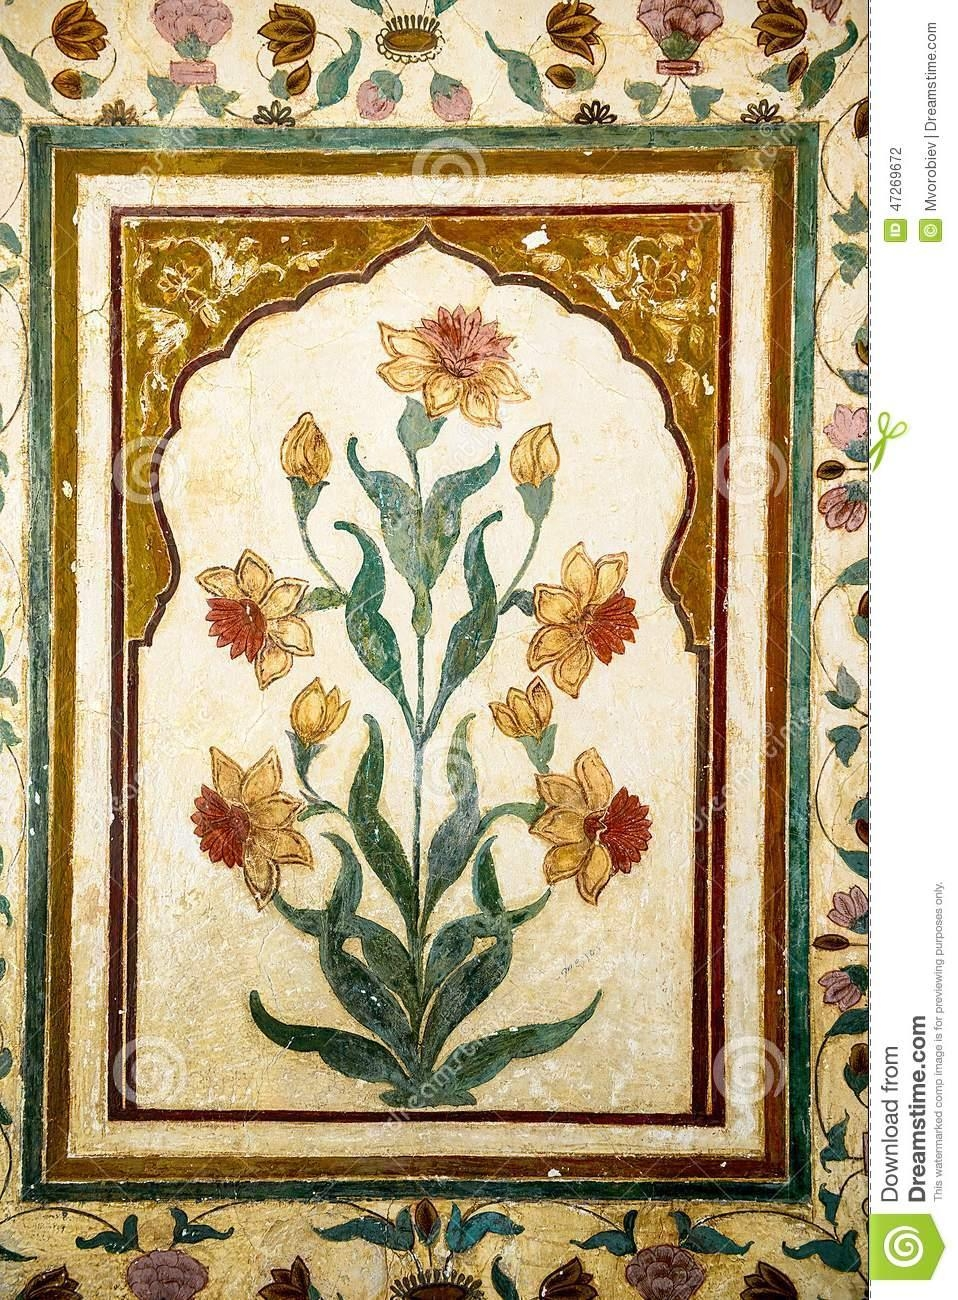 Decoration Of Precious Stones, Taj Mahal Walls Stock Photo – Image With Taj Mahal Wall Art (View 19 of 20)